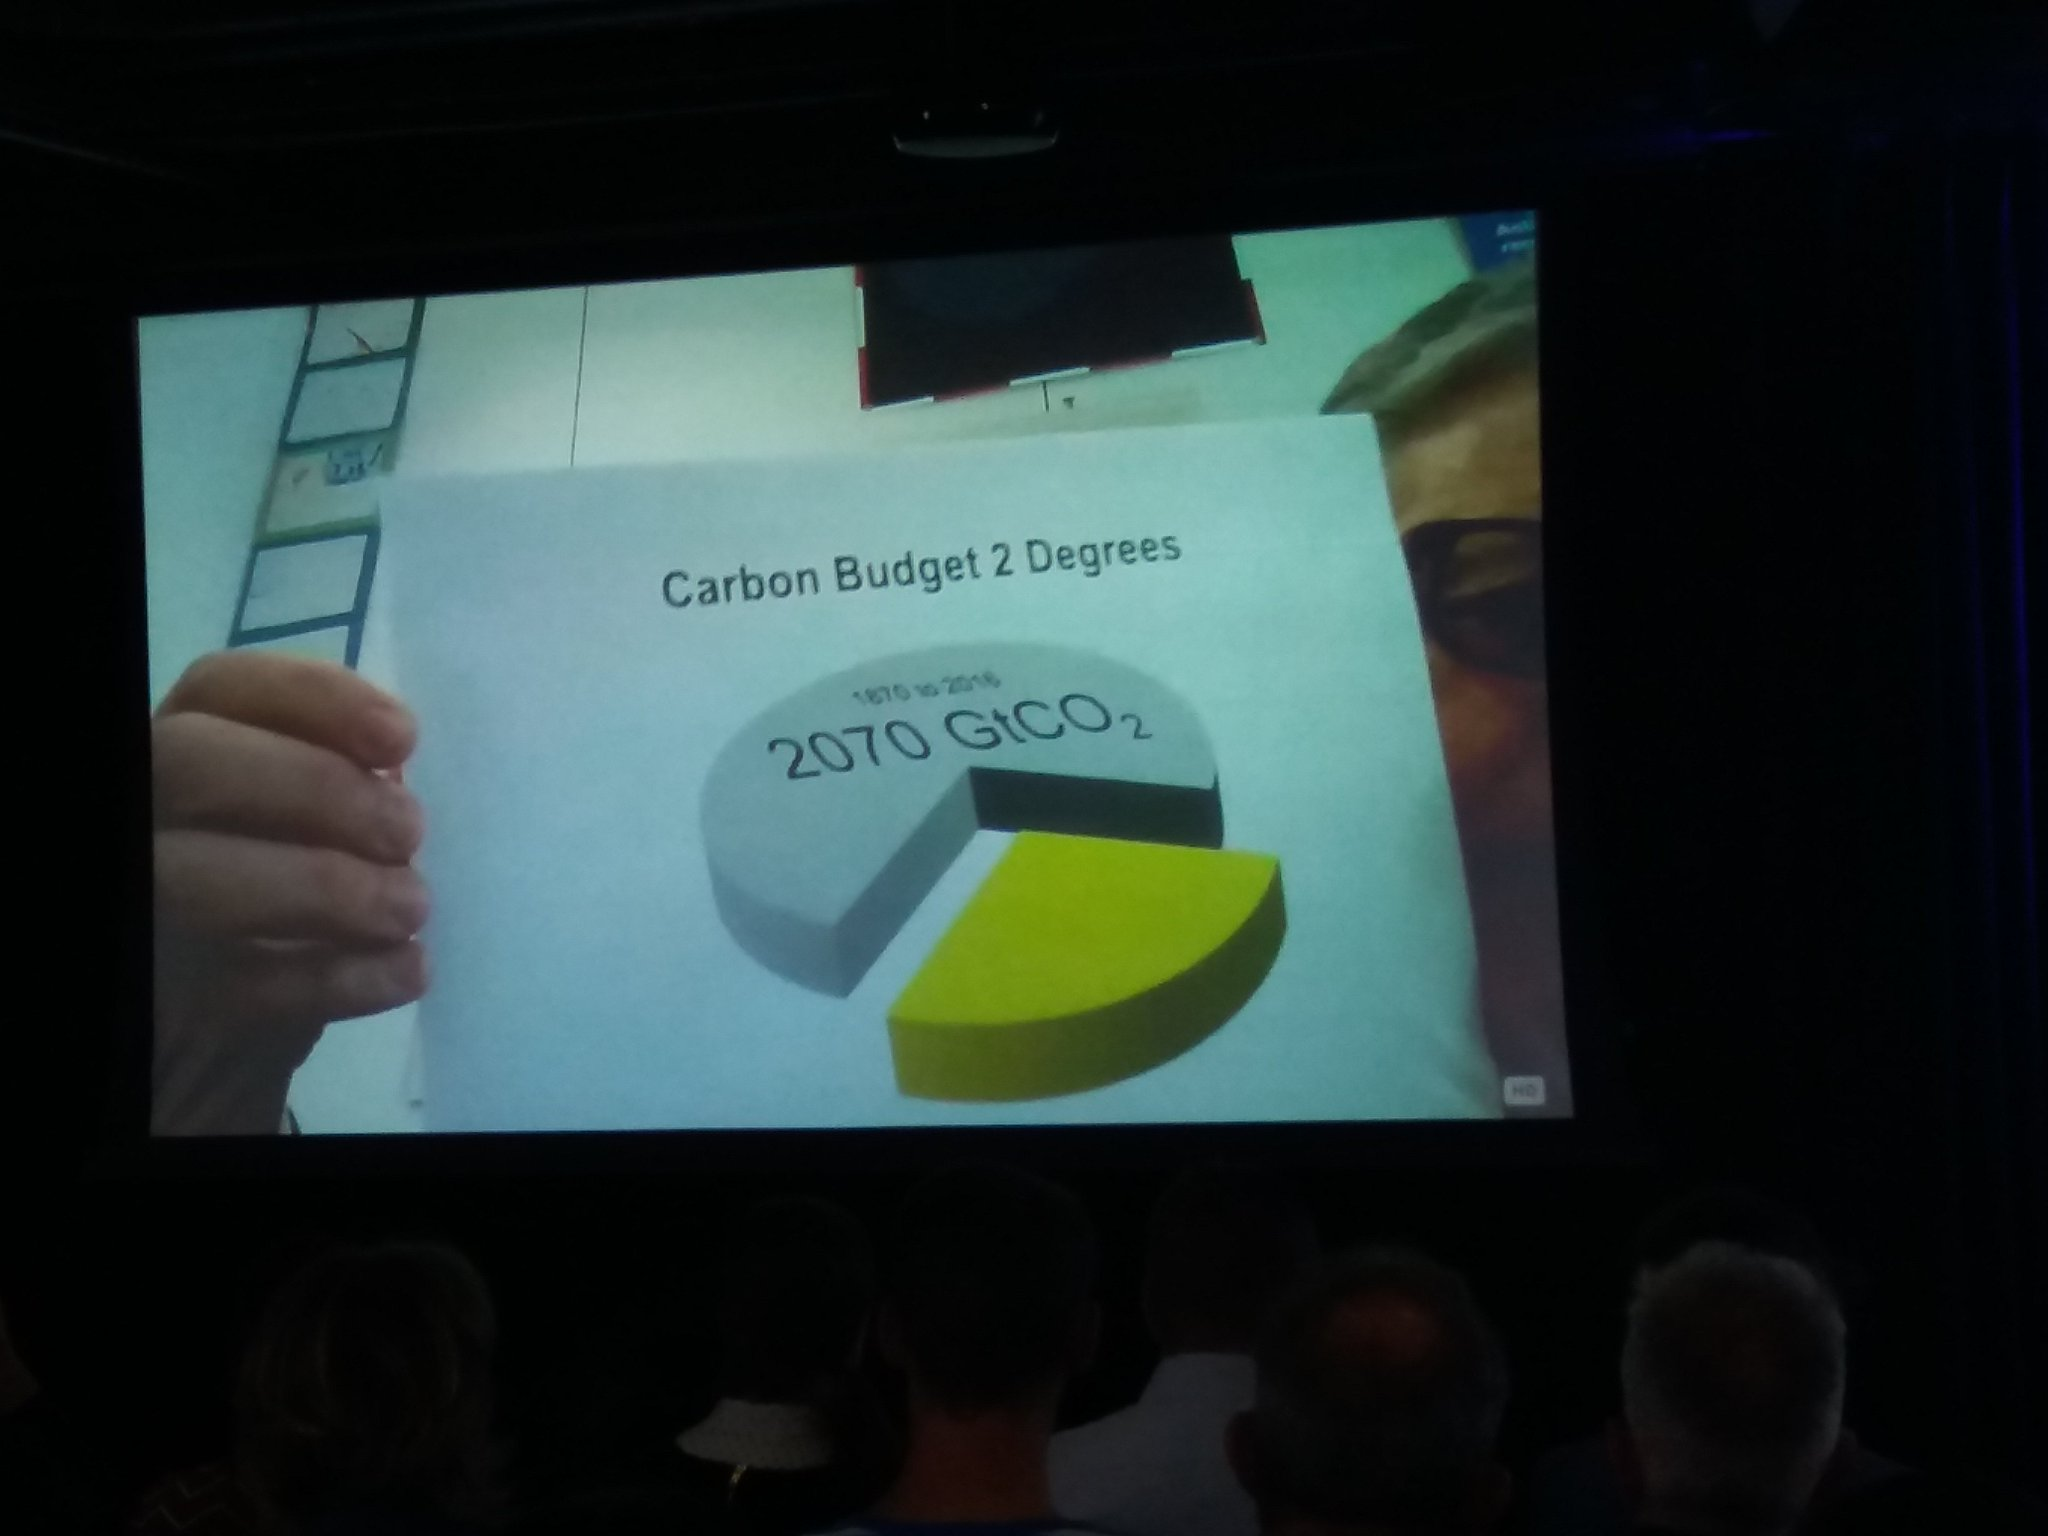 Our carbon budget is running out. @IPCC_CH director shows a picture worth a thousand words. #2020dontbelate https://t.co/RnVUZDbV2Z